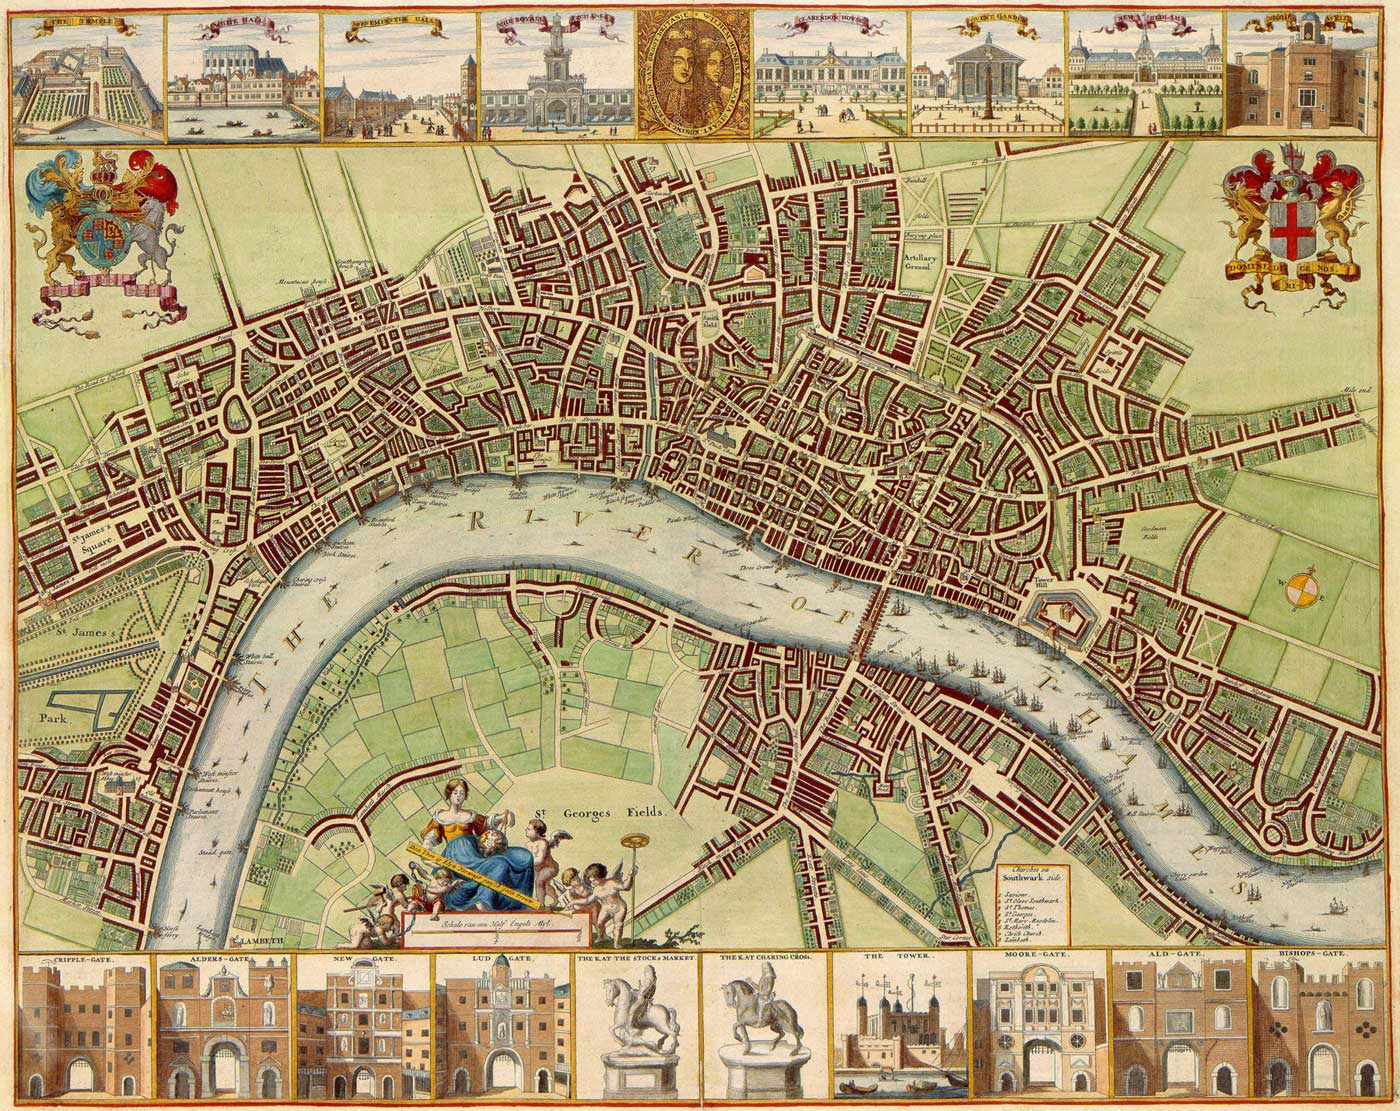 London Historical Map Mapsofnet - London map historical